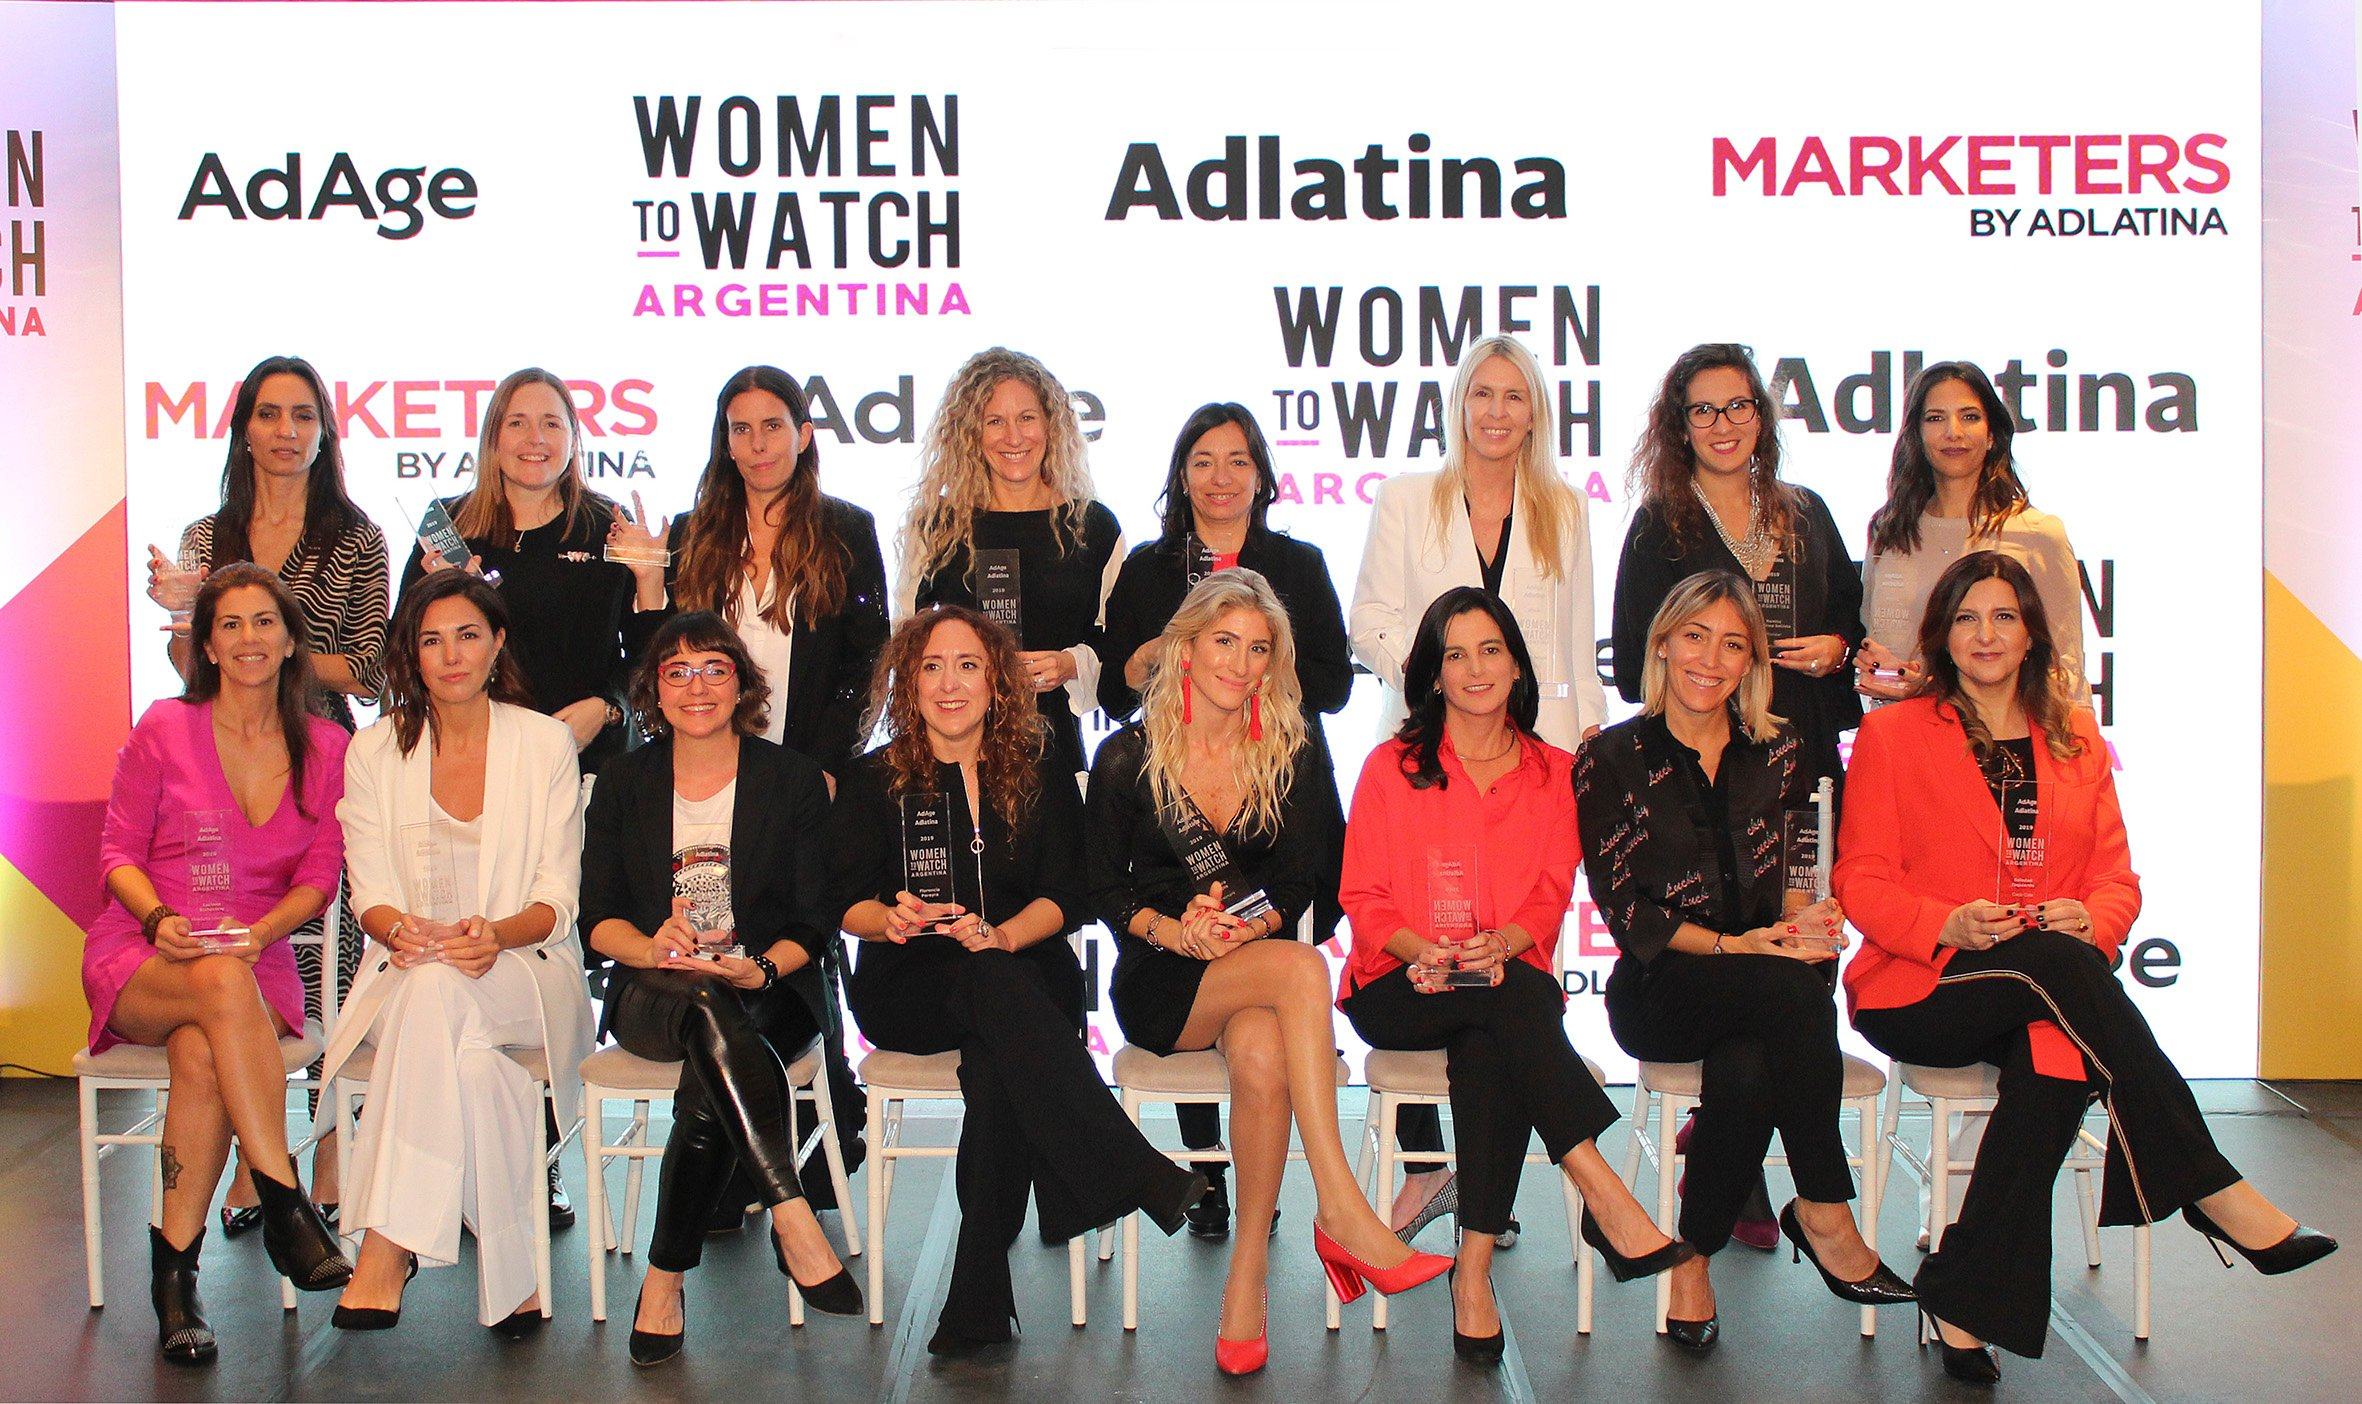 Ad Age and Latin American group Adlatina hosted the fifth annual Women to Watch in Argentina event at the Four Seasons in Buenos Aires, celebrating 16 outstanding marketing, advertising and communication professionals.